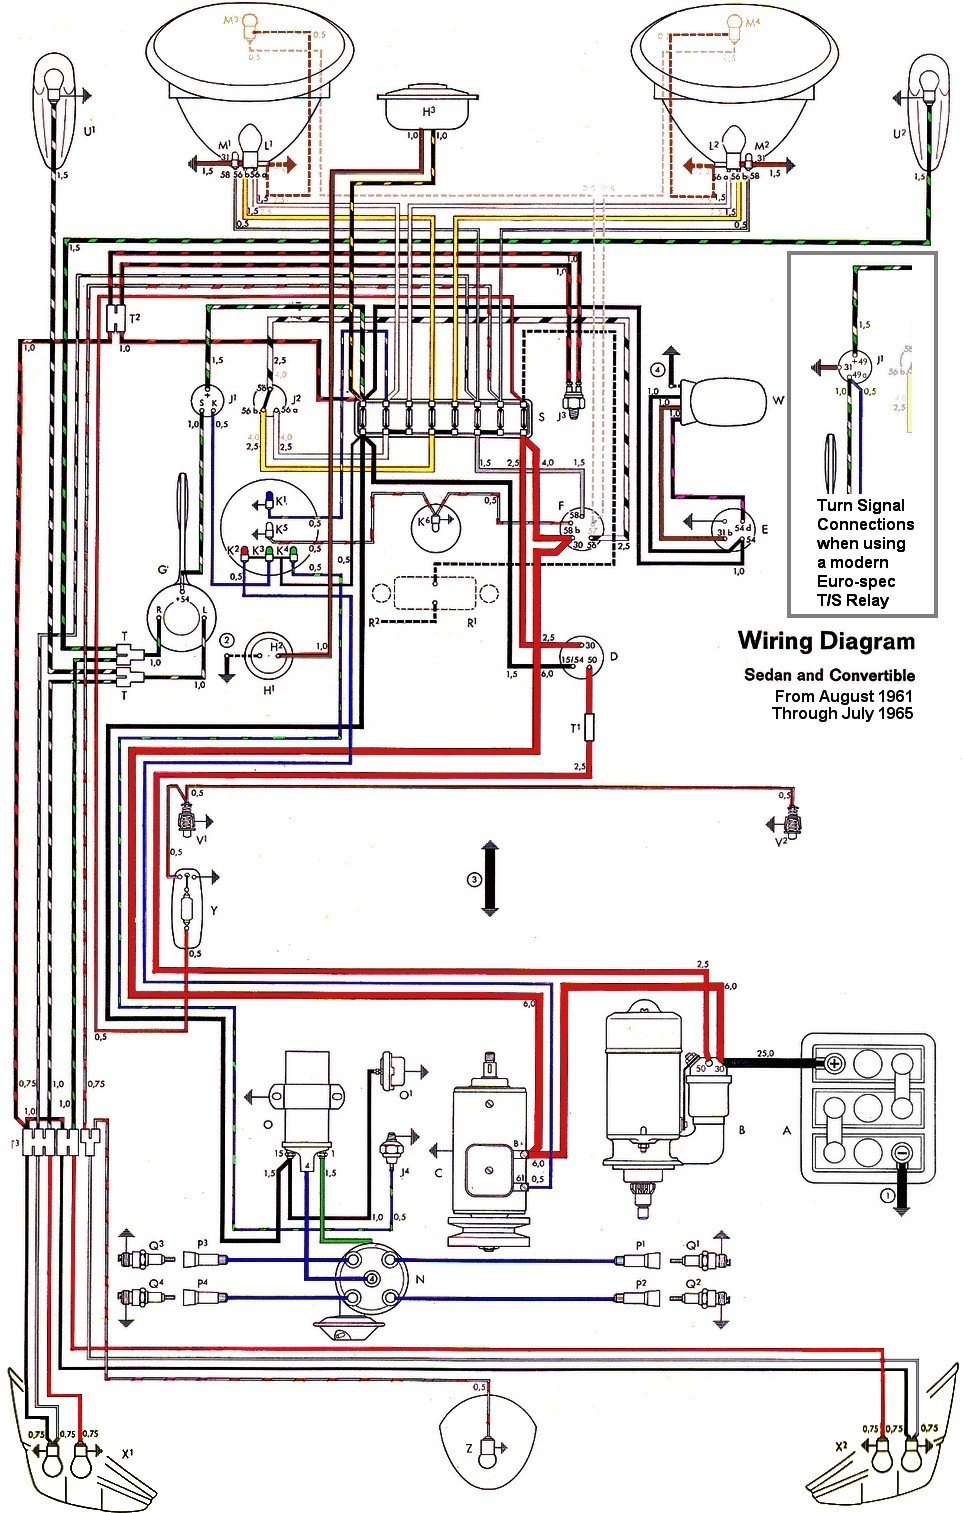 thesamba com type 1 wiring diagrams rh thesamba com vw bug wiring diagram vw bug wiring harness kit